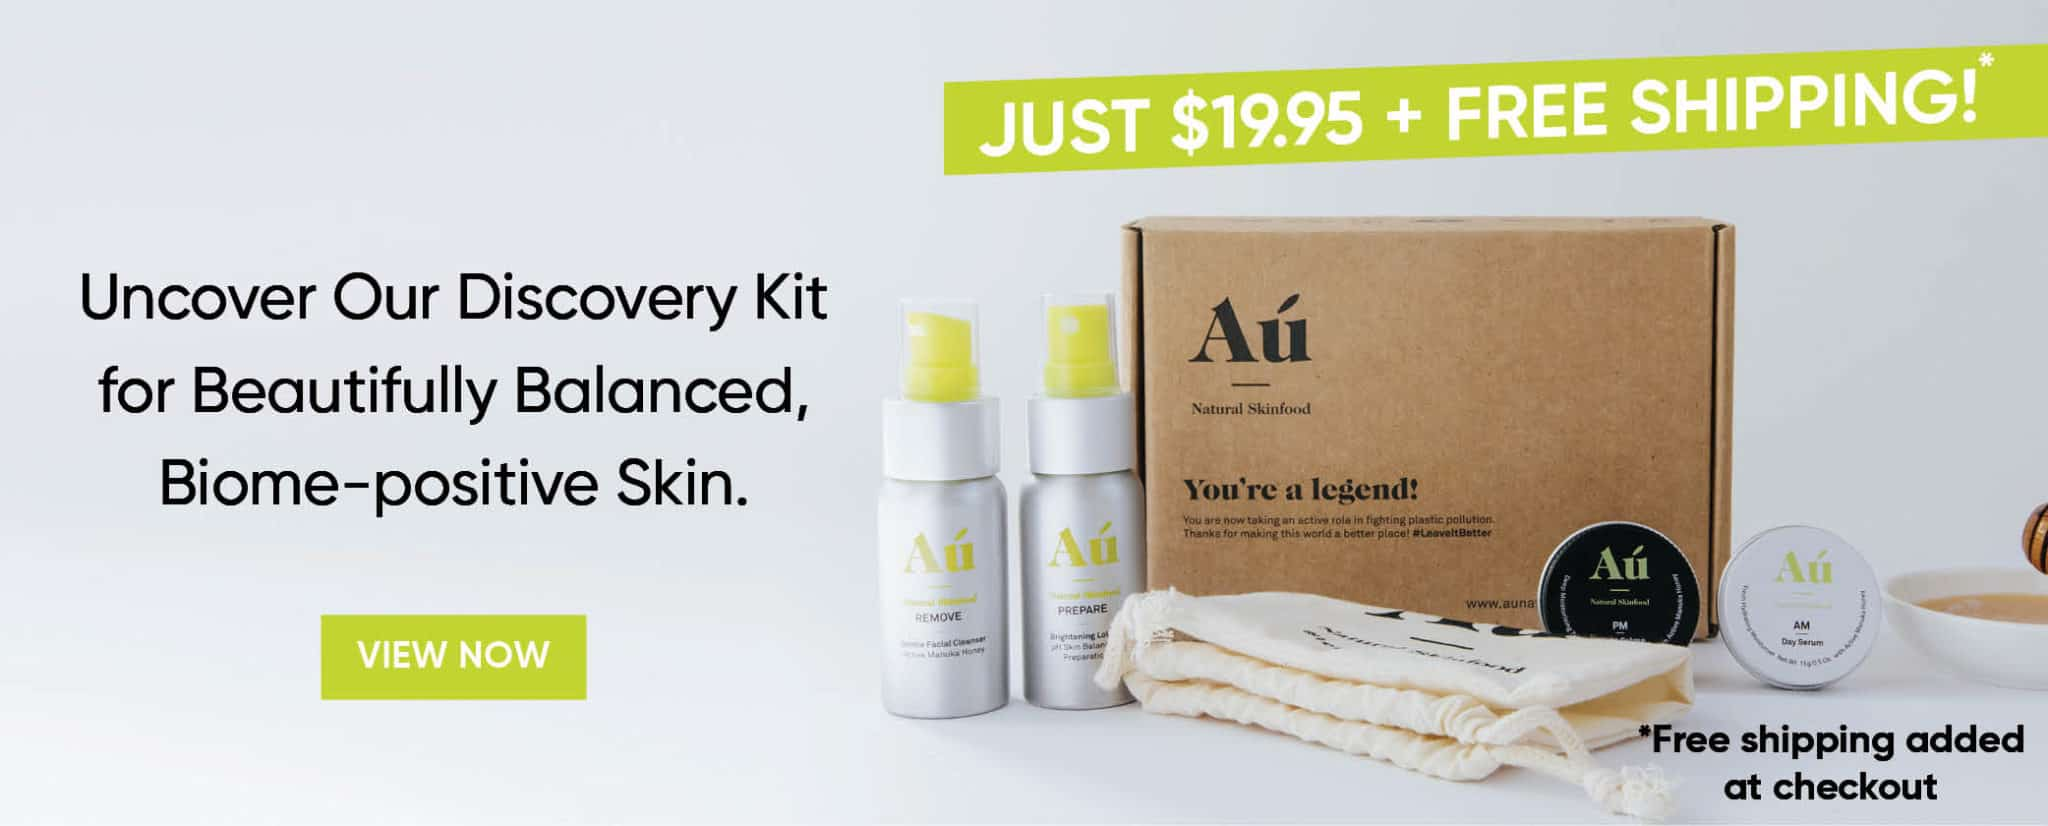 Au Natural Skinfood Banner Image Discovery Kit